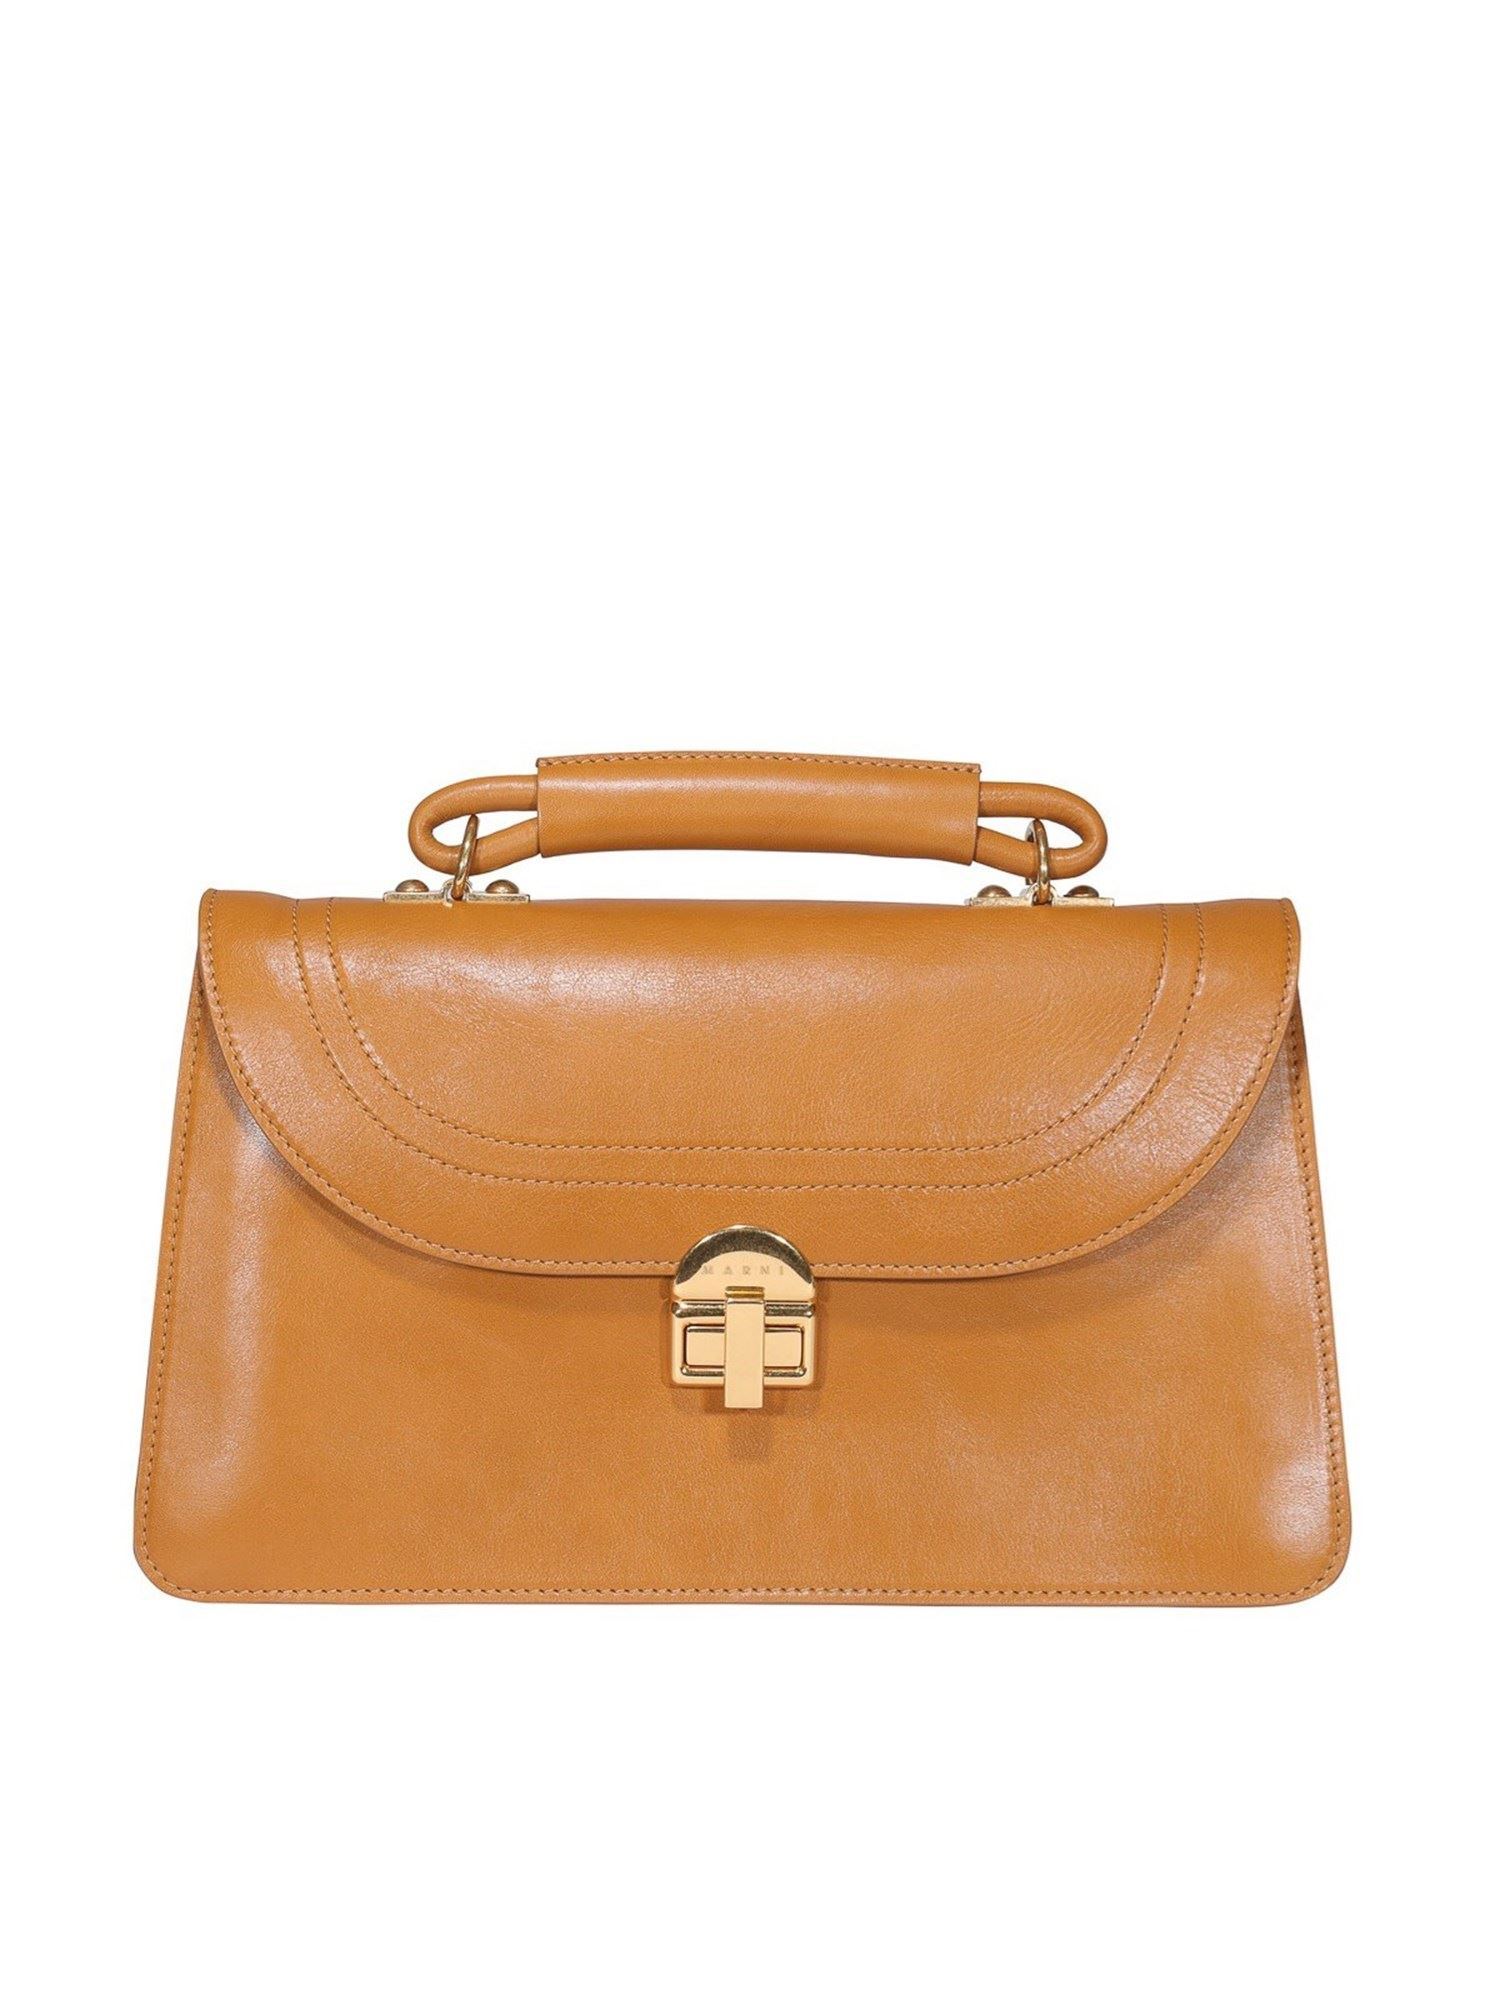 Marni Juliette Leather Bag In Mustard Color In Yellow